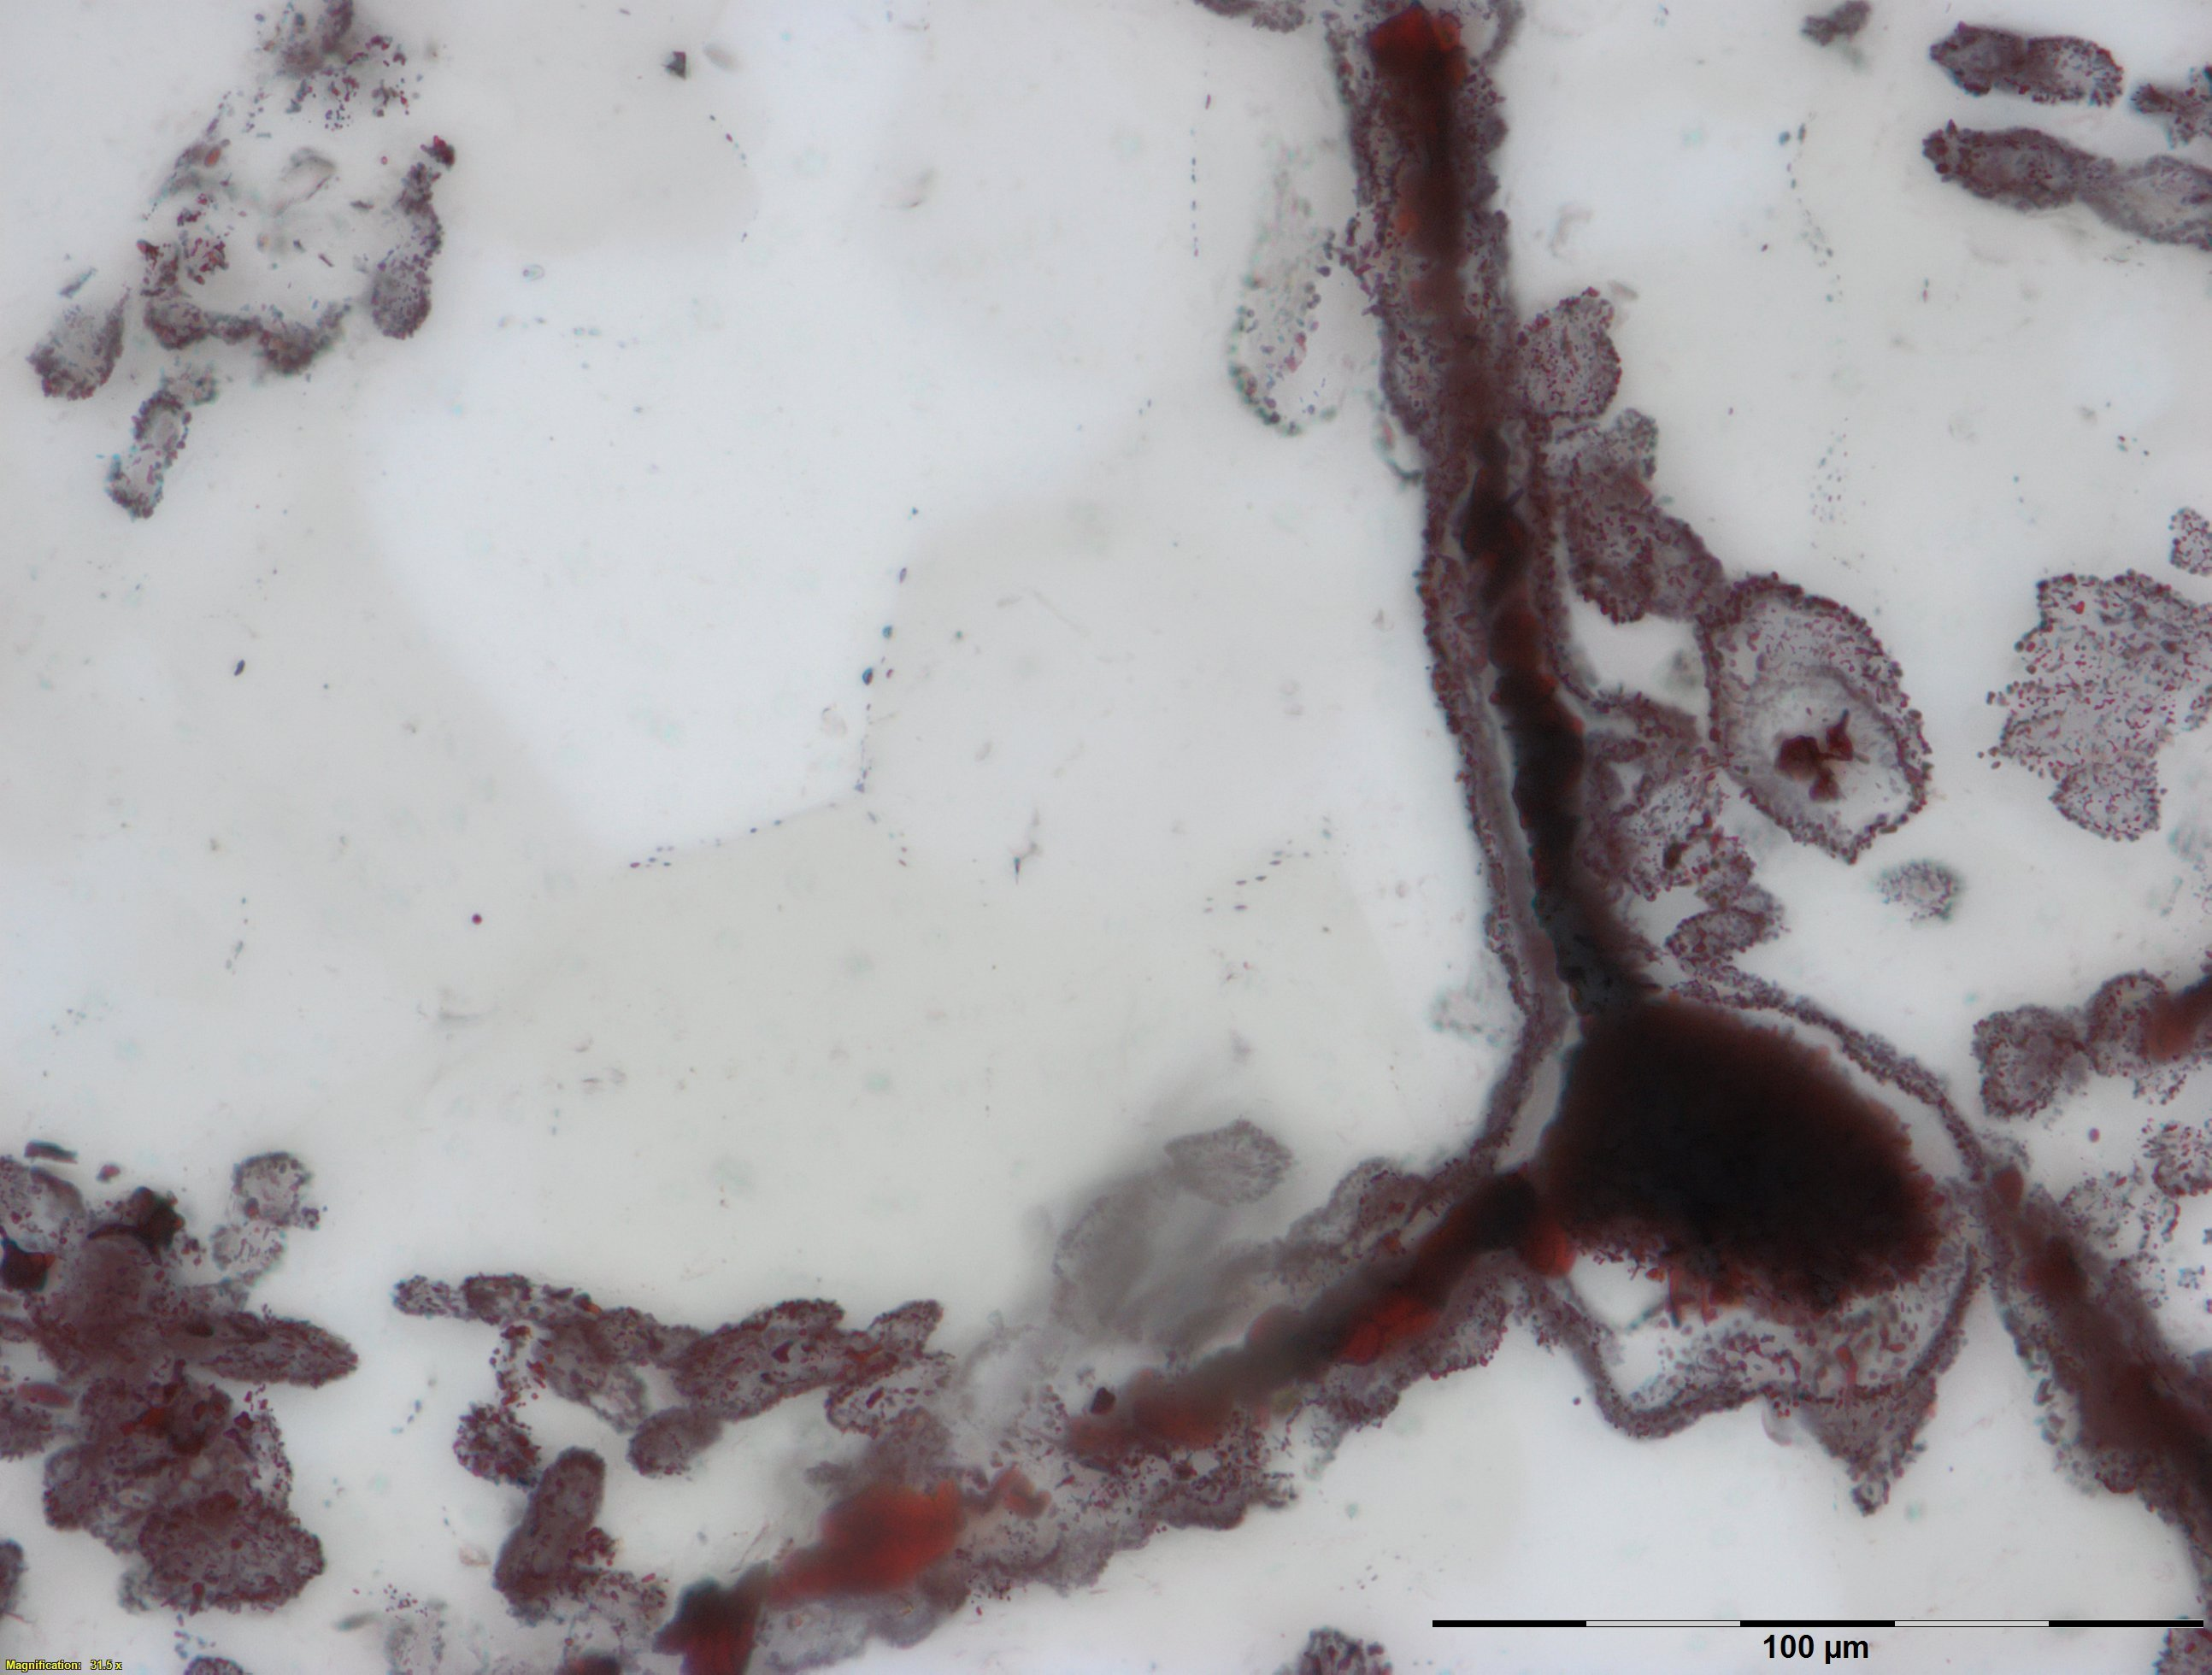 Haematite filament attached to a clump of iron in the lower right, from hydrothermal vent deposits in the Nuvvuagittuq Supracrustal Belt in Quebec, Canada. These clumps of iron and filaments were microbial cells and are similar to modern microbes found in vent environments. Credit: M.Dodd